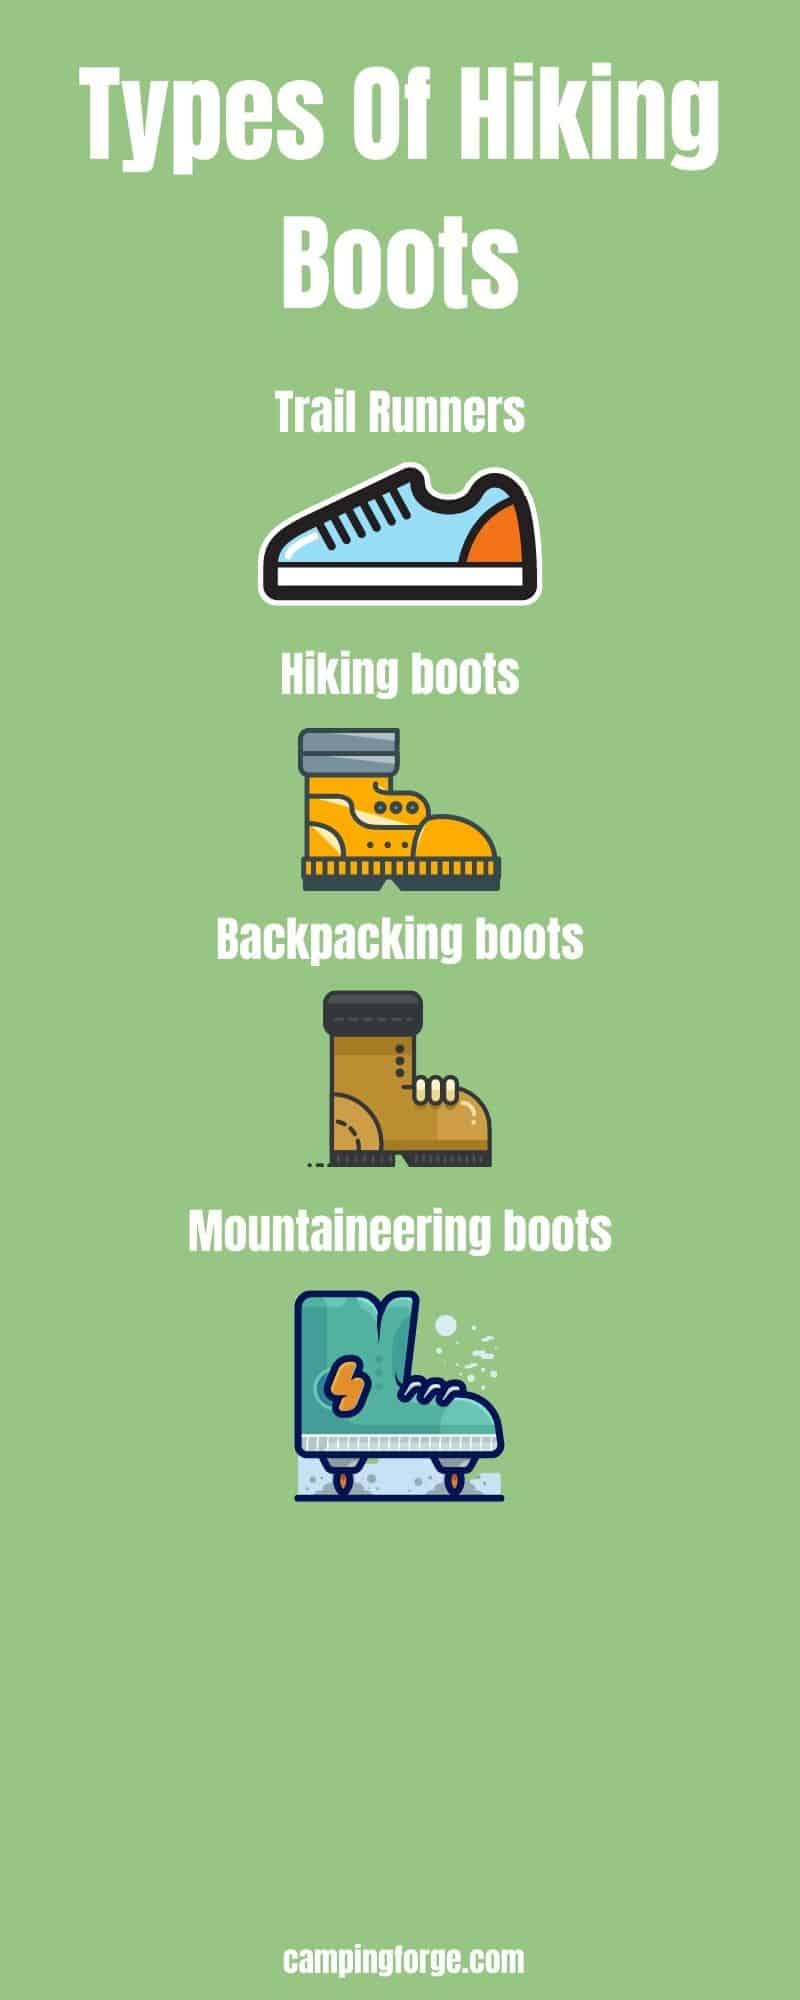 An infographic that shows all of the types of hiking boots